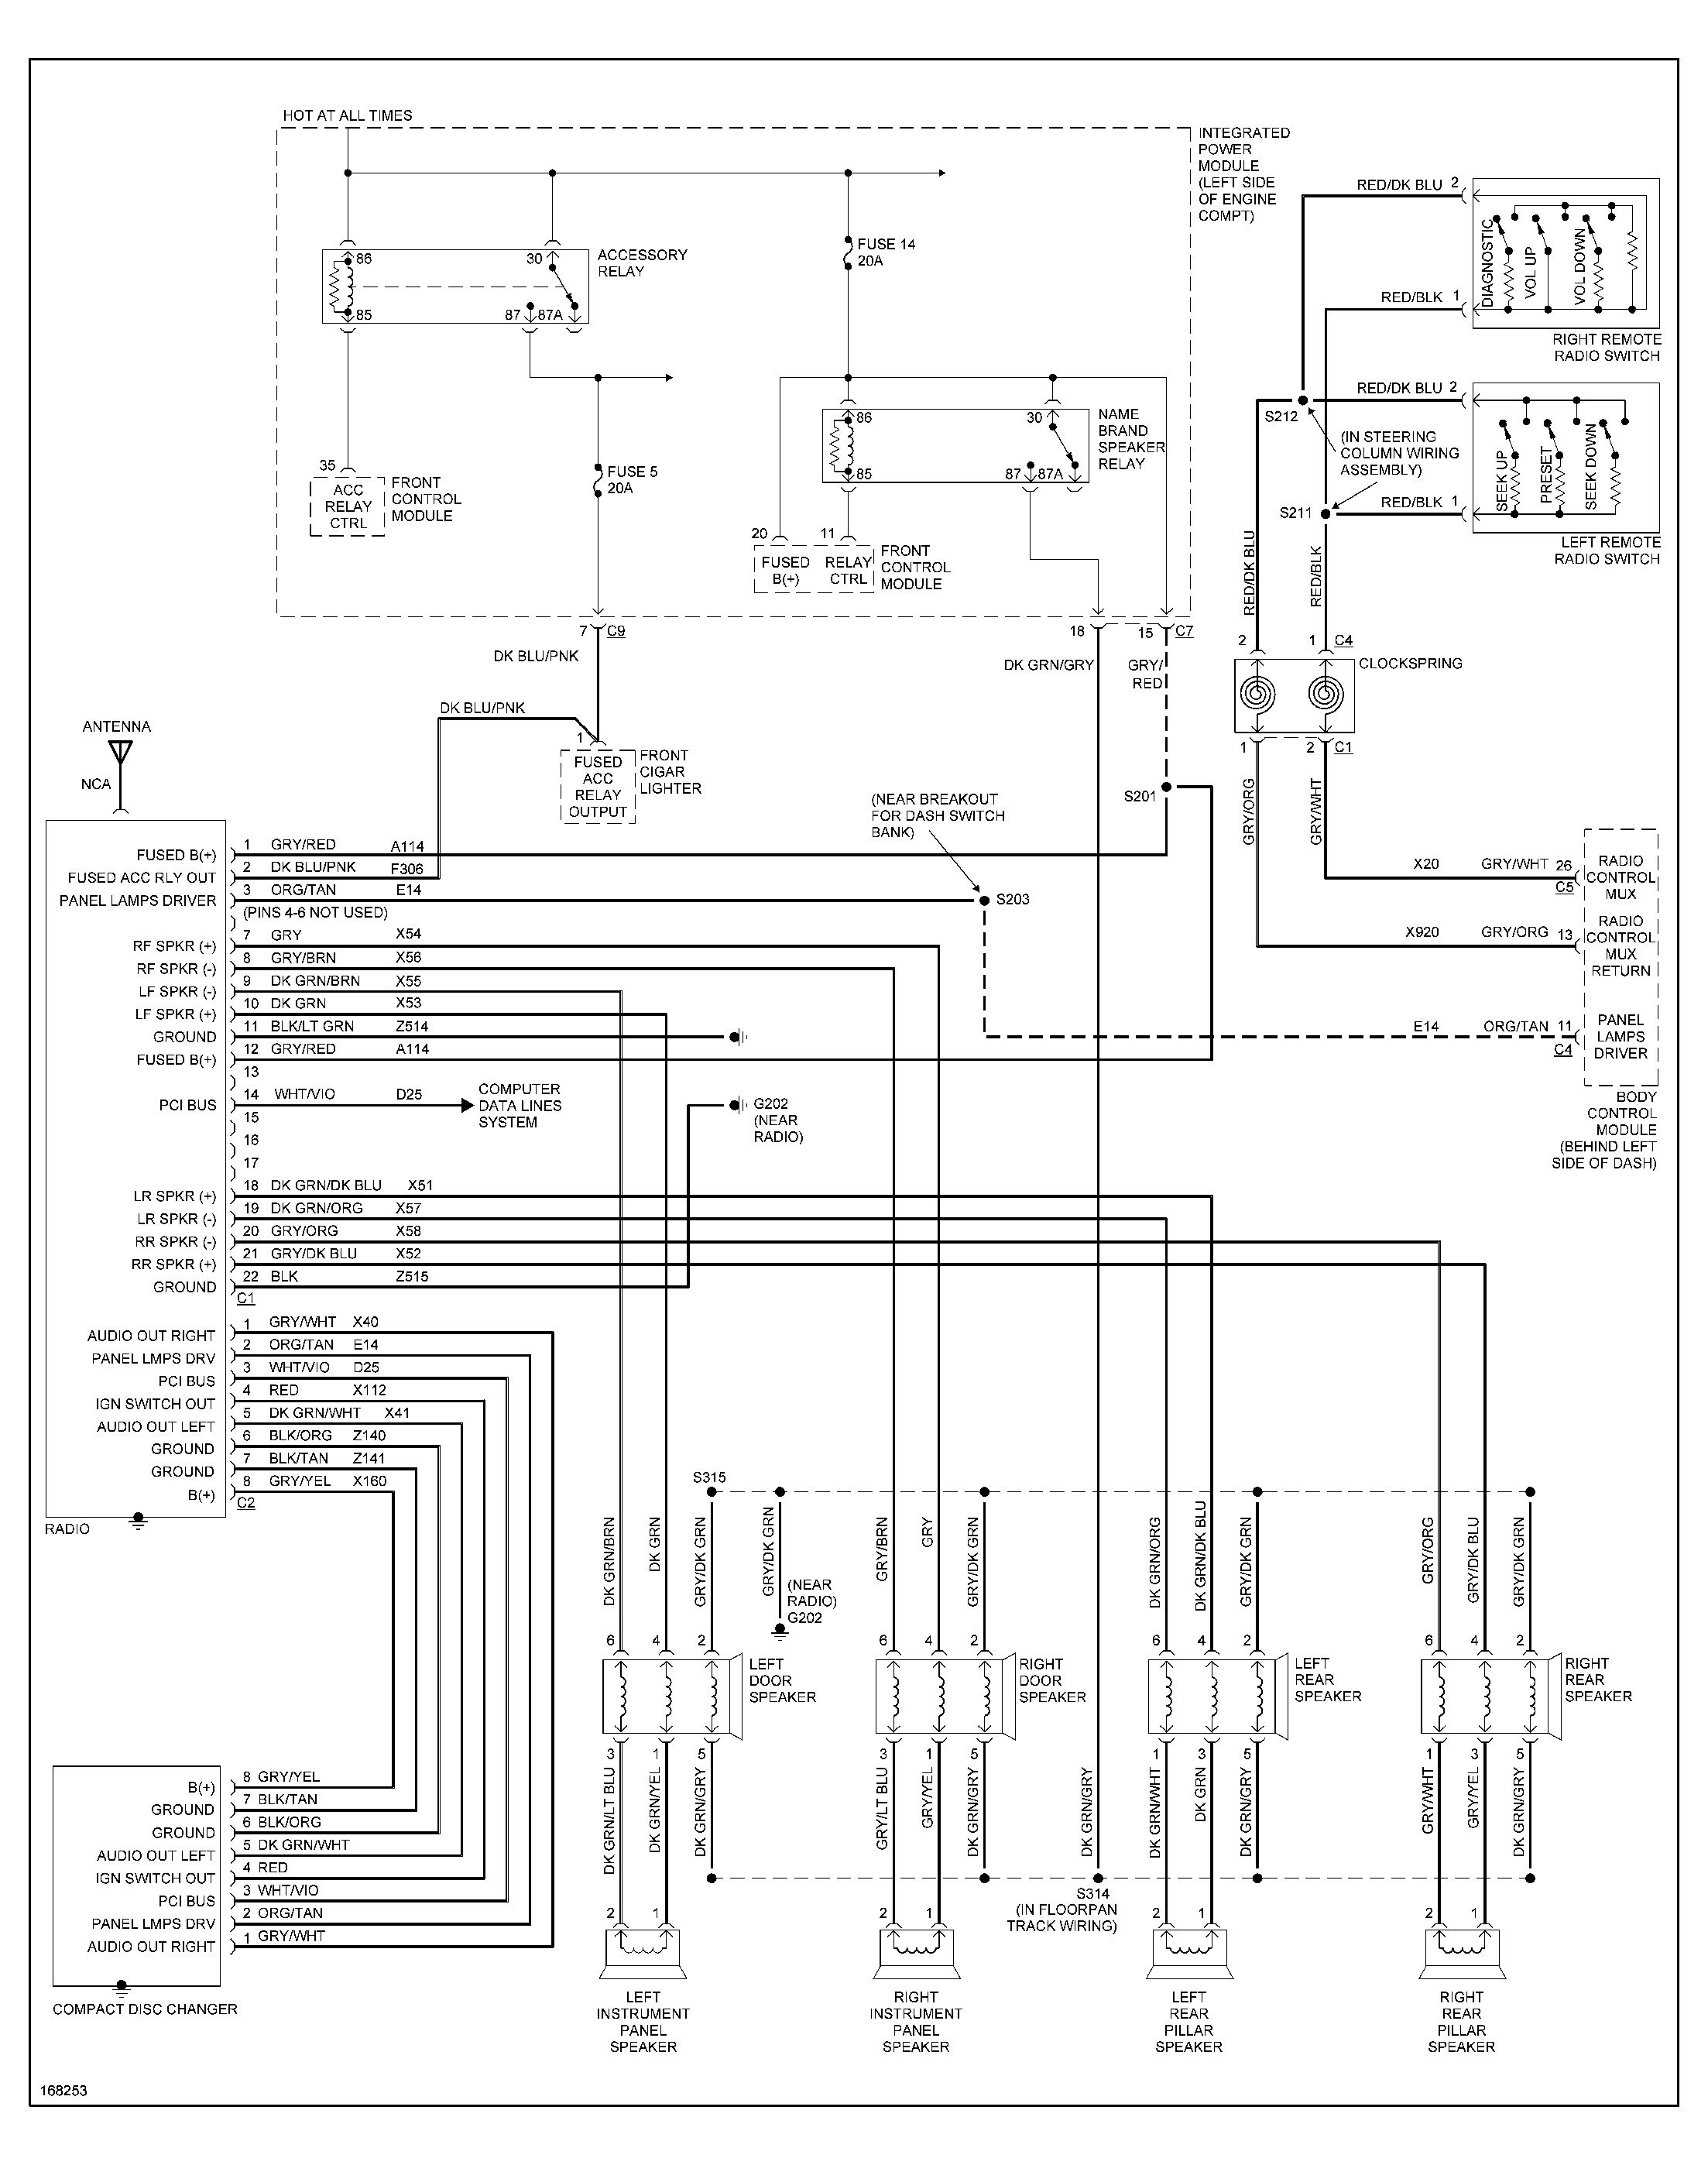 [SCHEMATICS_49CH]  ER_4528] 2009 Dodge Ram 1500 Wiring Diagram 2009 Circuit Diagrams Wiring  Diagram | 2007 Dodge Ram 1500 Radio Wiring Diagram |  | Arivo Aidew Illuminateatx Librar Wiring 101